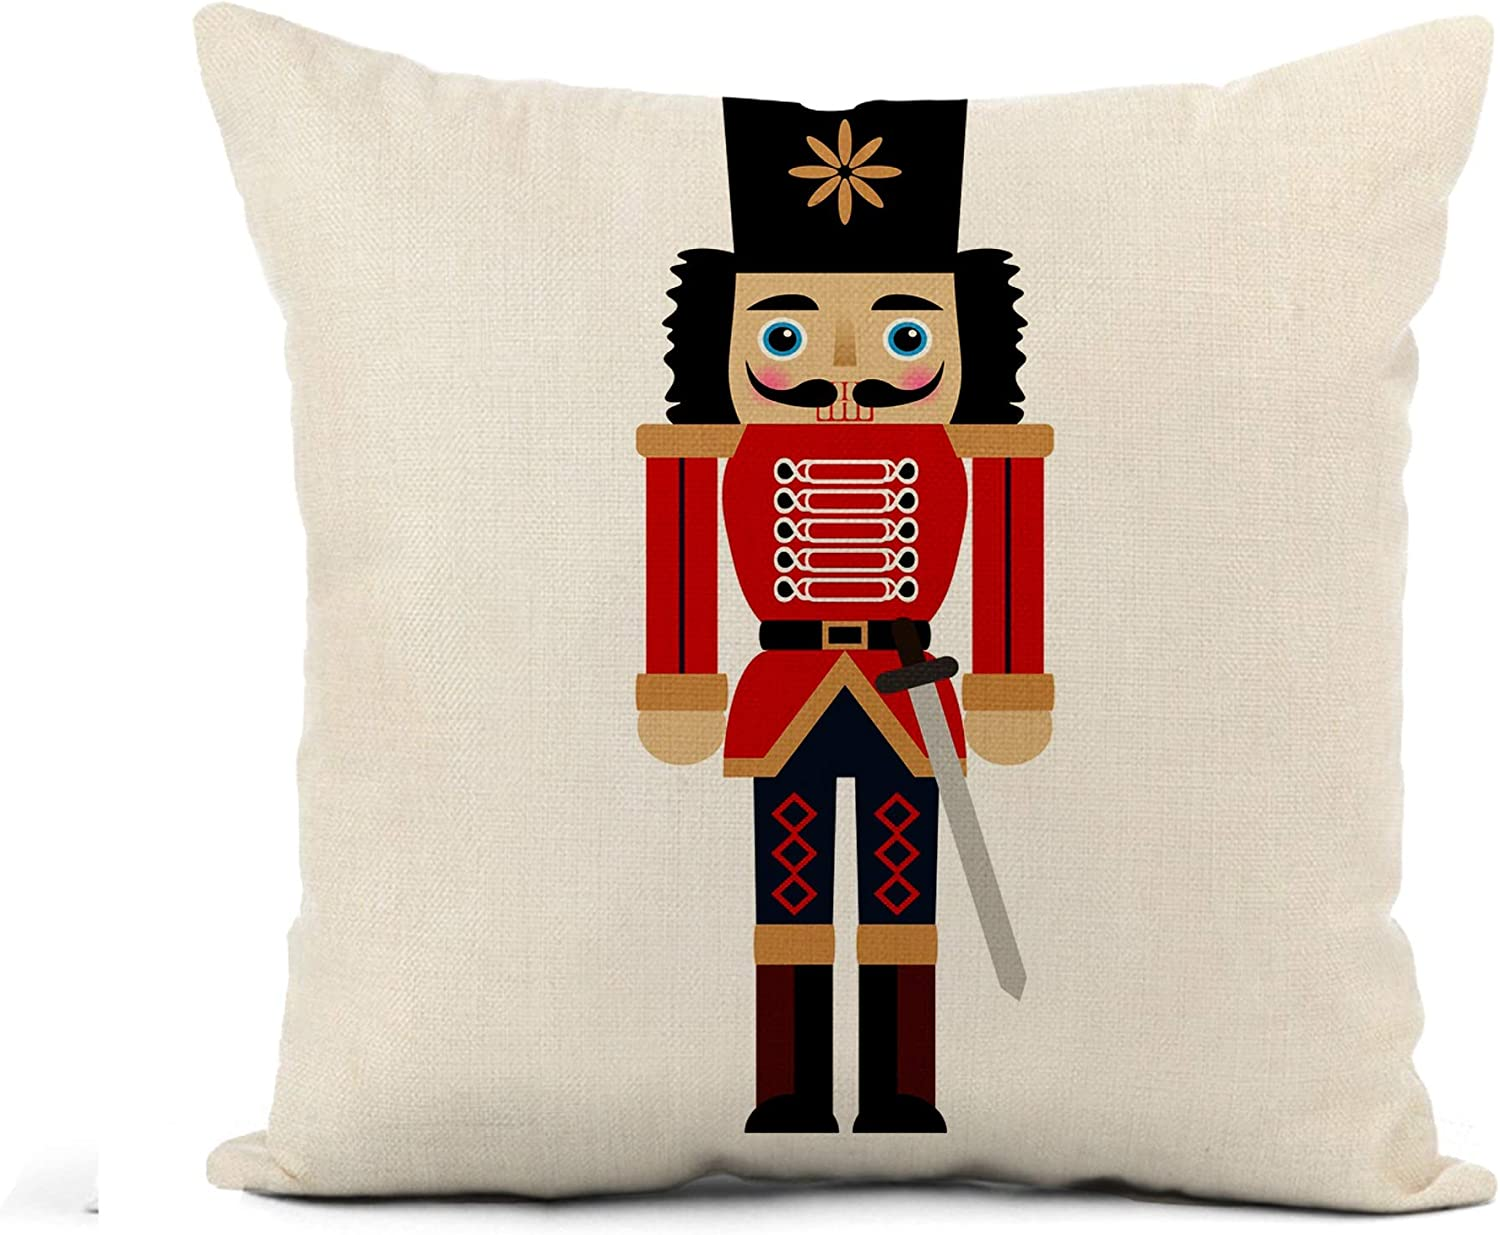 Awowee Flax Throw Pillow Cover Ballet of Nutcracker Sword Christmas Greeting Holiday Merry Retro 18x18 Inches Pillowcase Home Decor Square Cotton Linen Pillow Case Cushion Cover